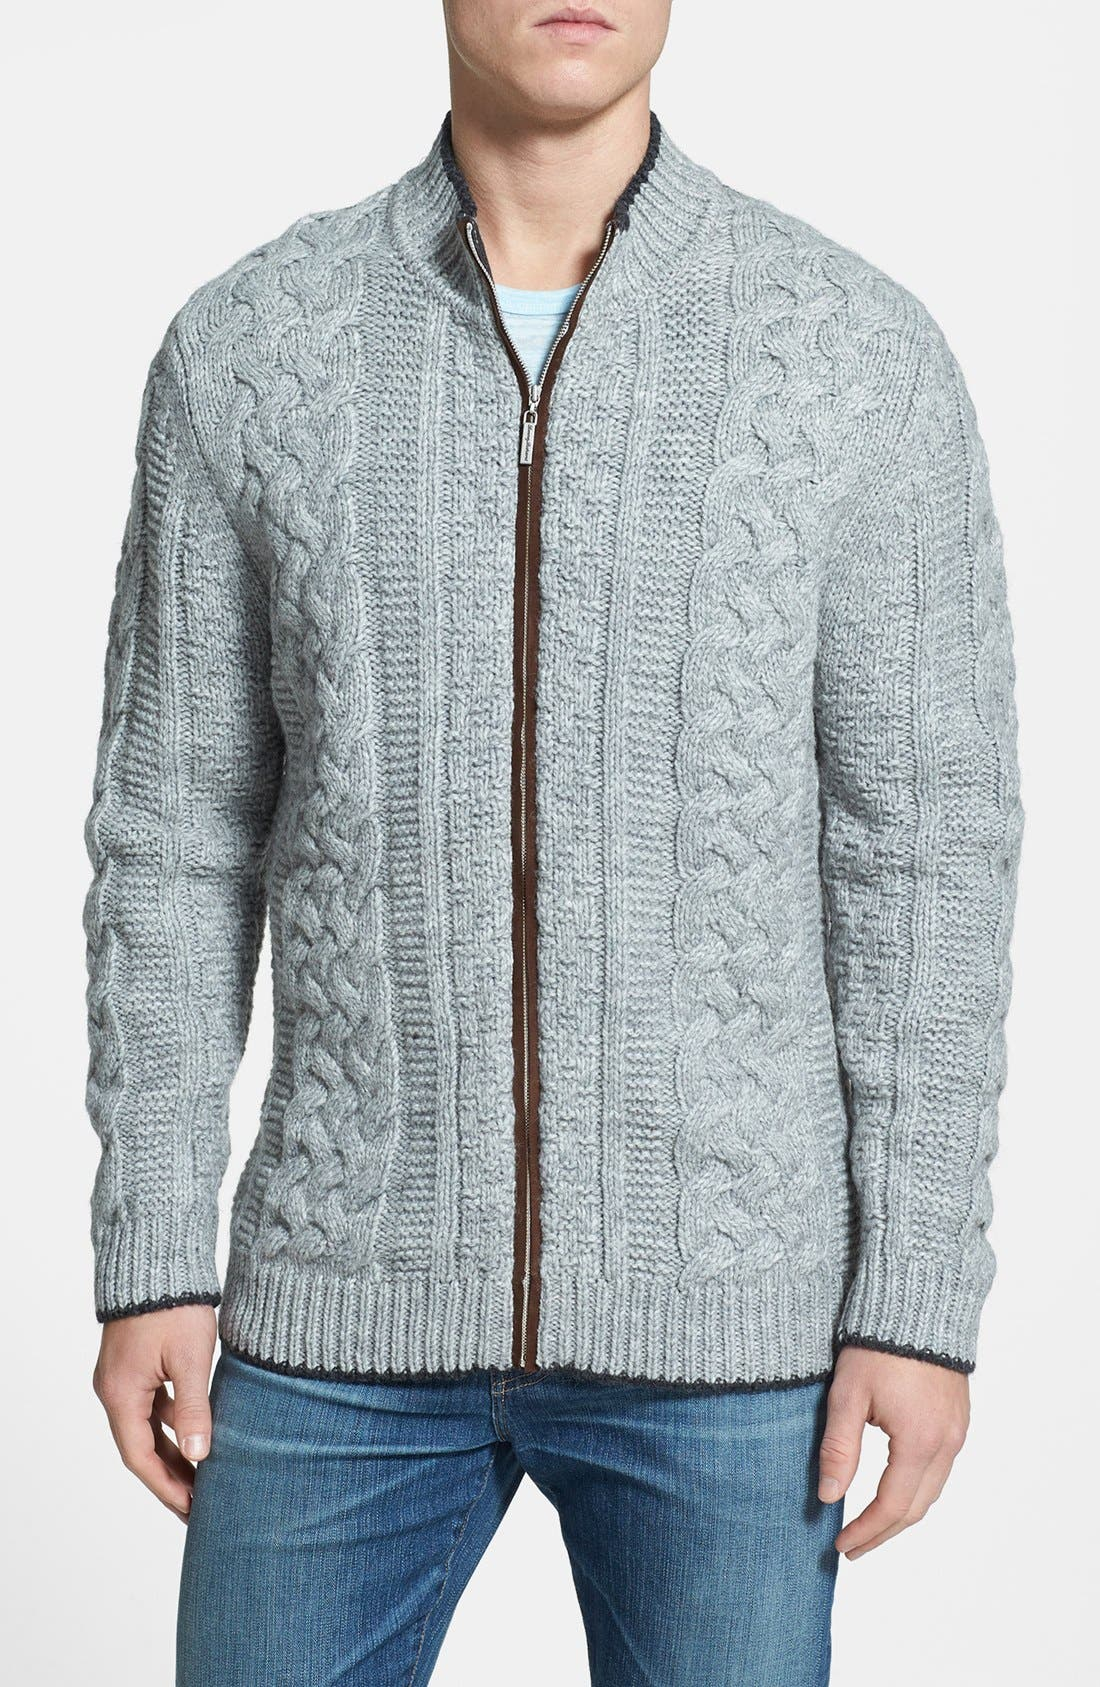 Alternate Image 1 Selected - Tommy Bahama 'Upstate' Cable Knit Wool Blend Cardigan